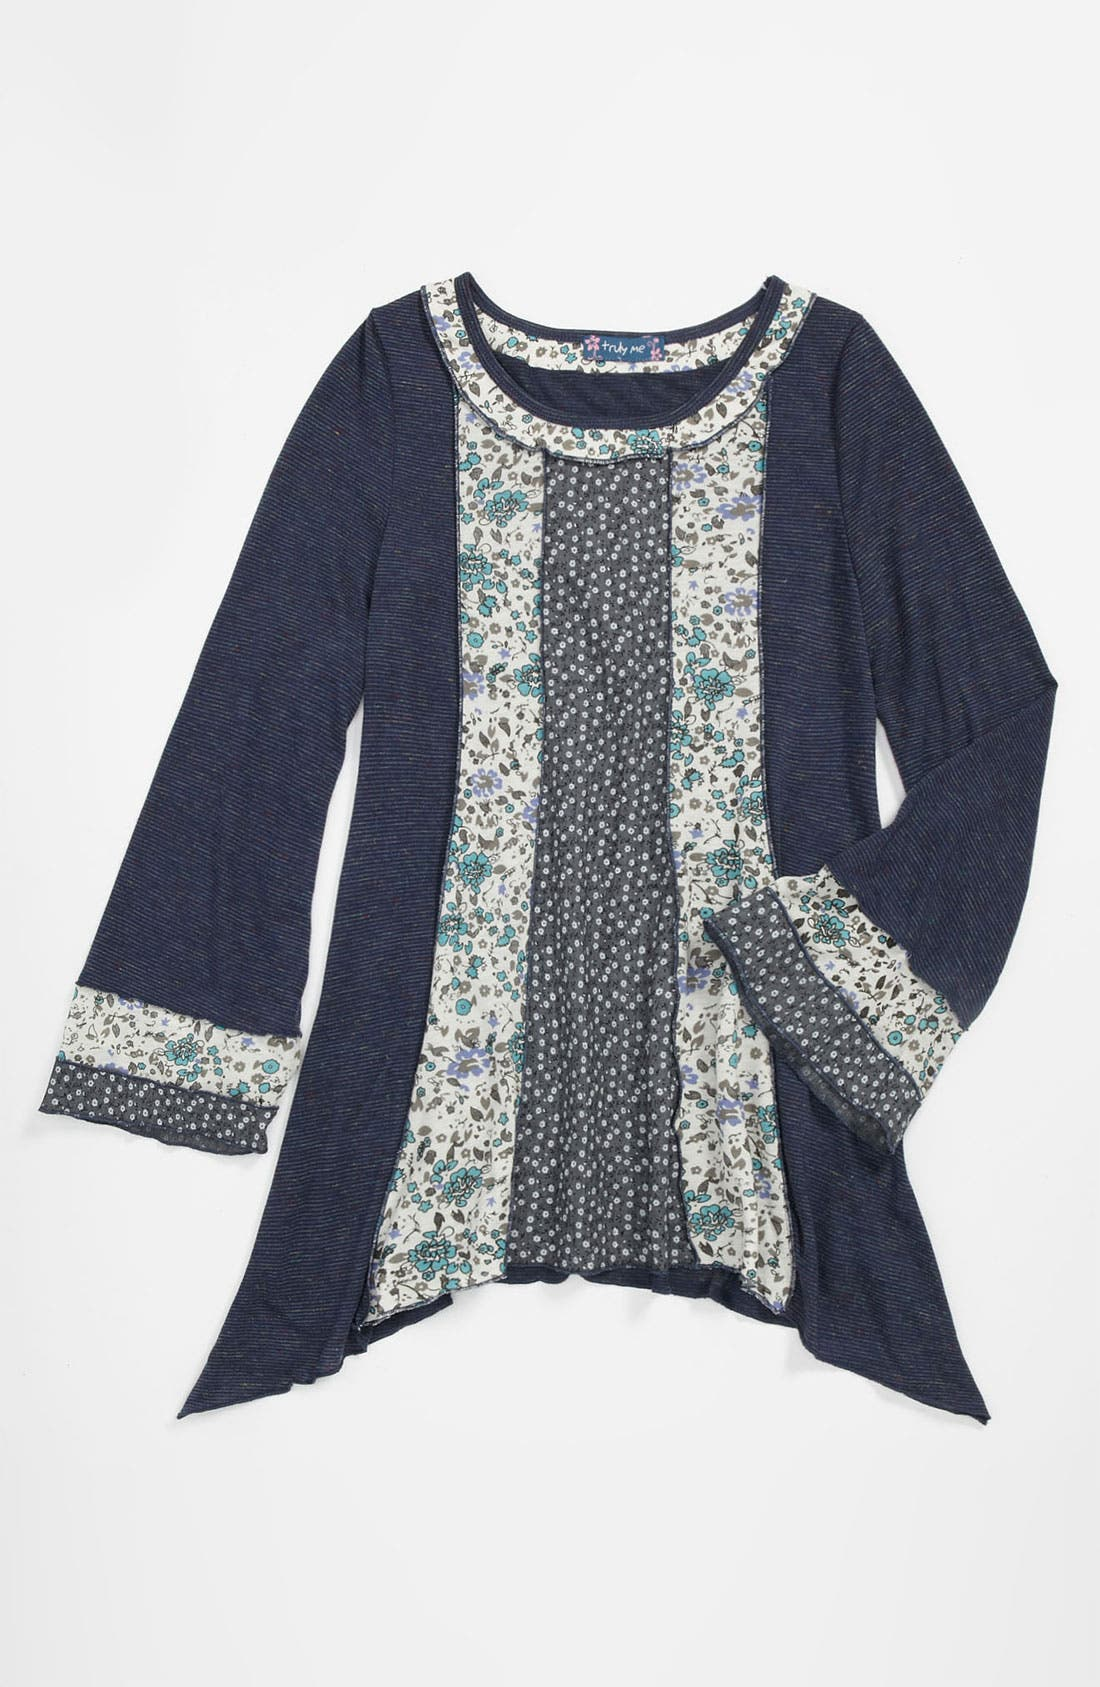 Alternate Image 1 Selected - Truly Me Mixed Media Tunic (Big Girls)